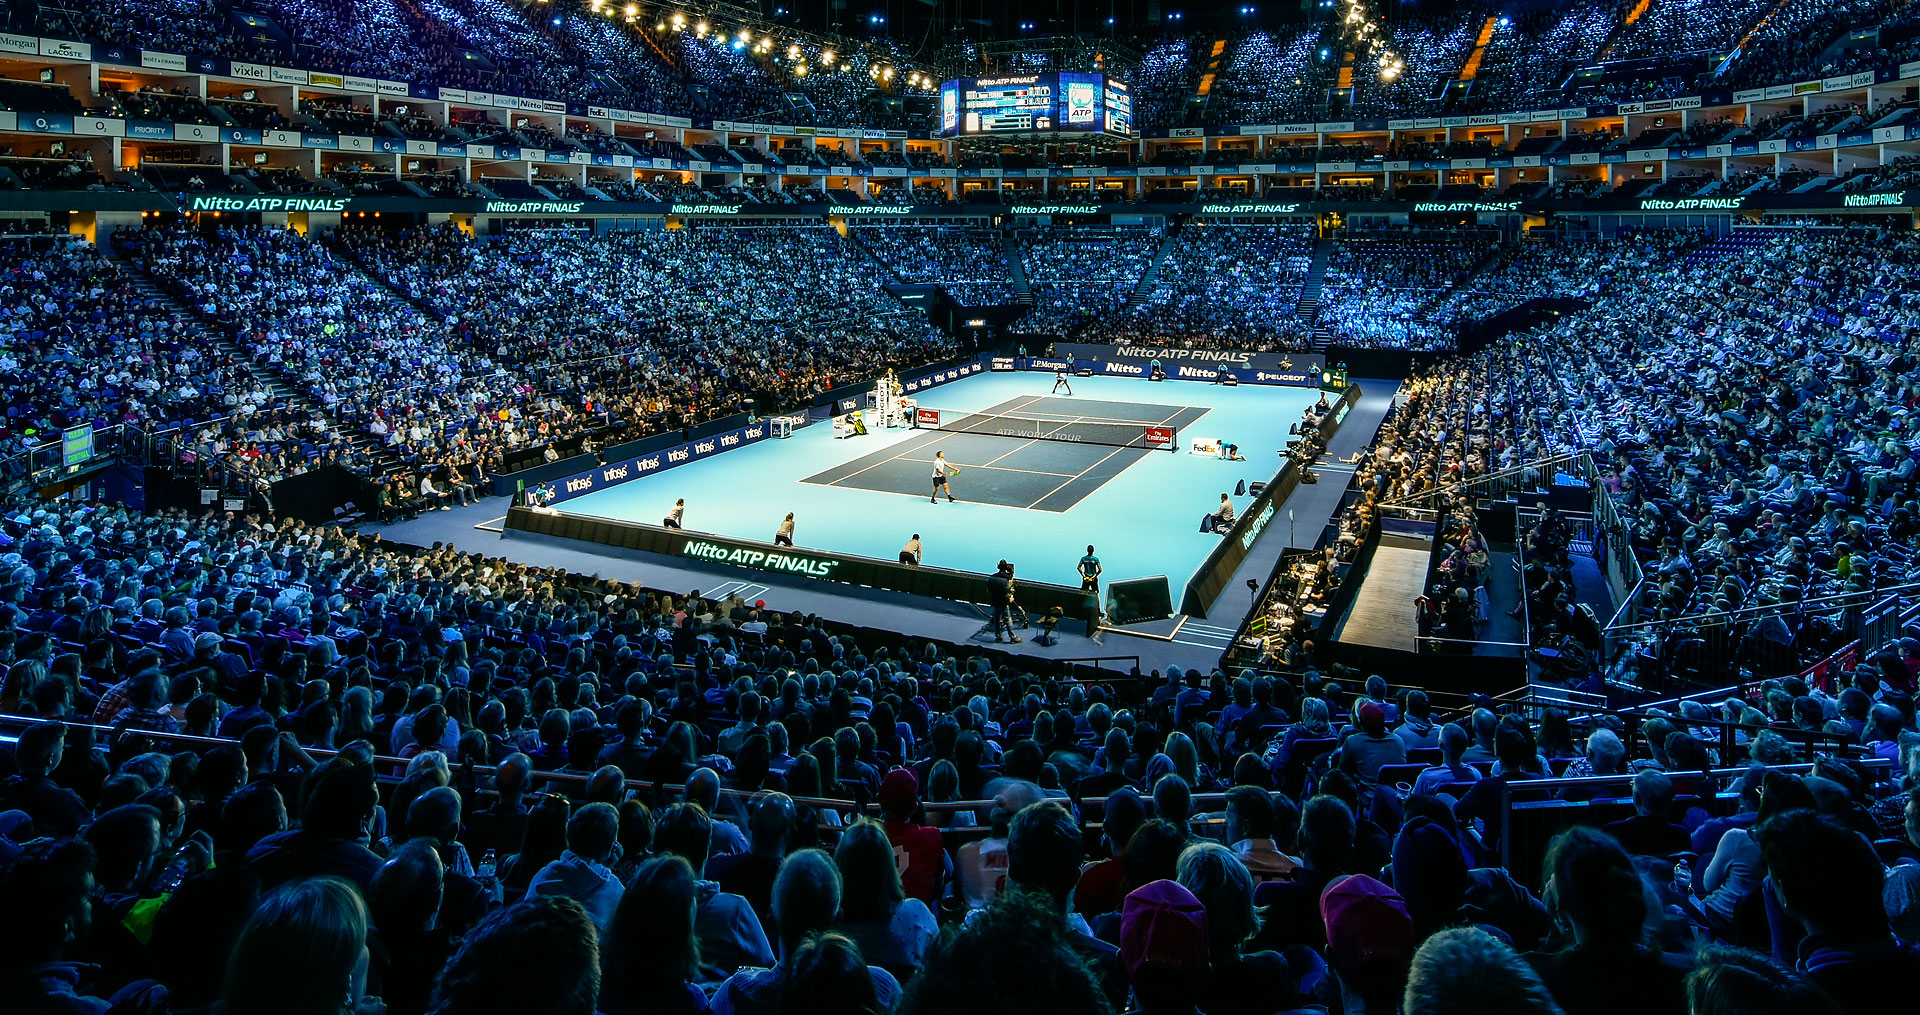 Nitto Atp Finals Prize Money 2020 Confirmed Perfect Tennis